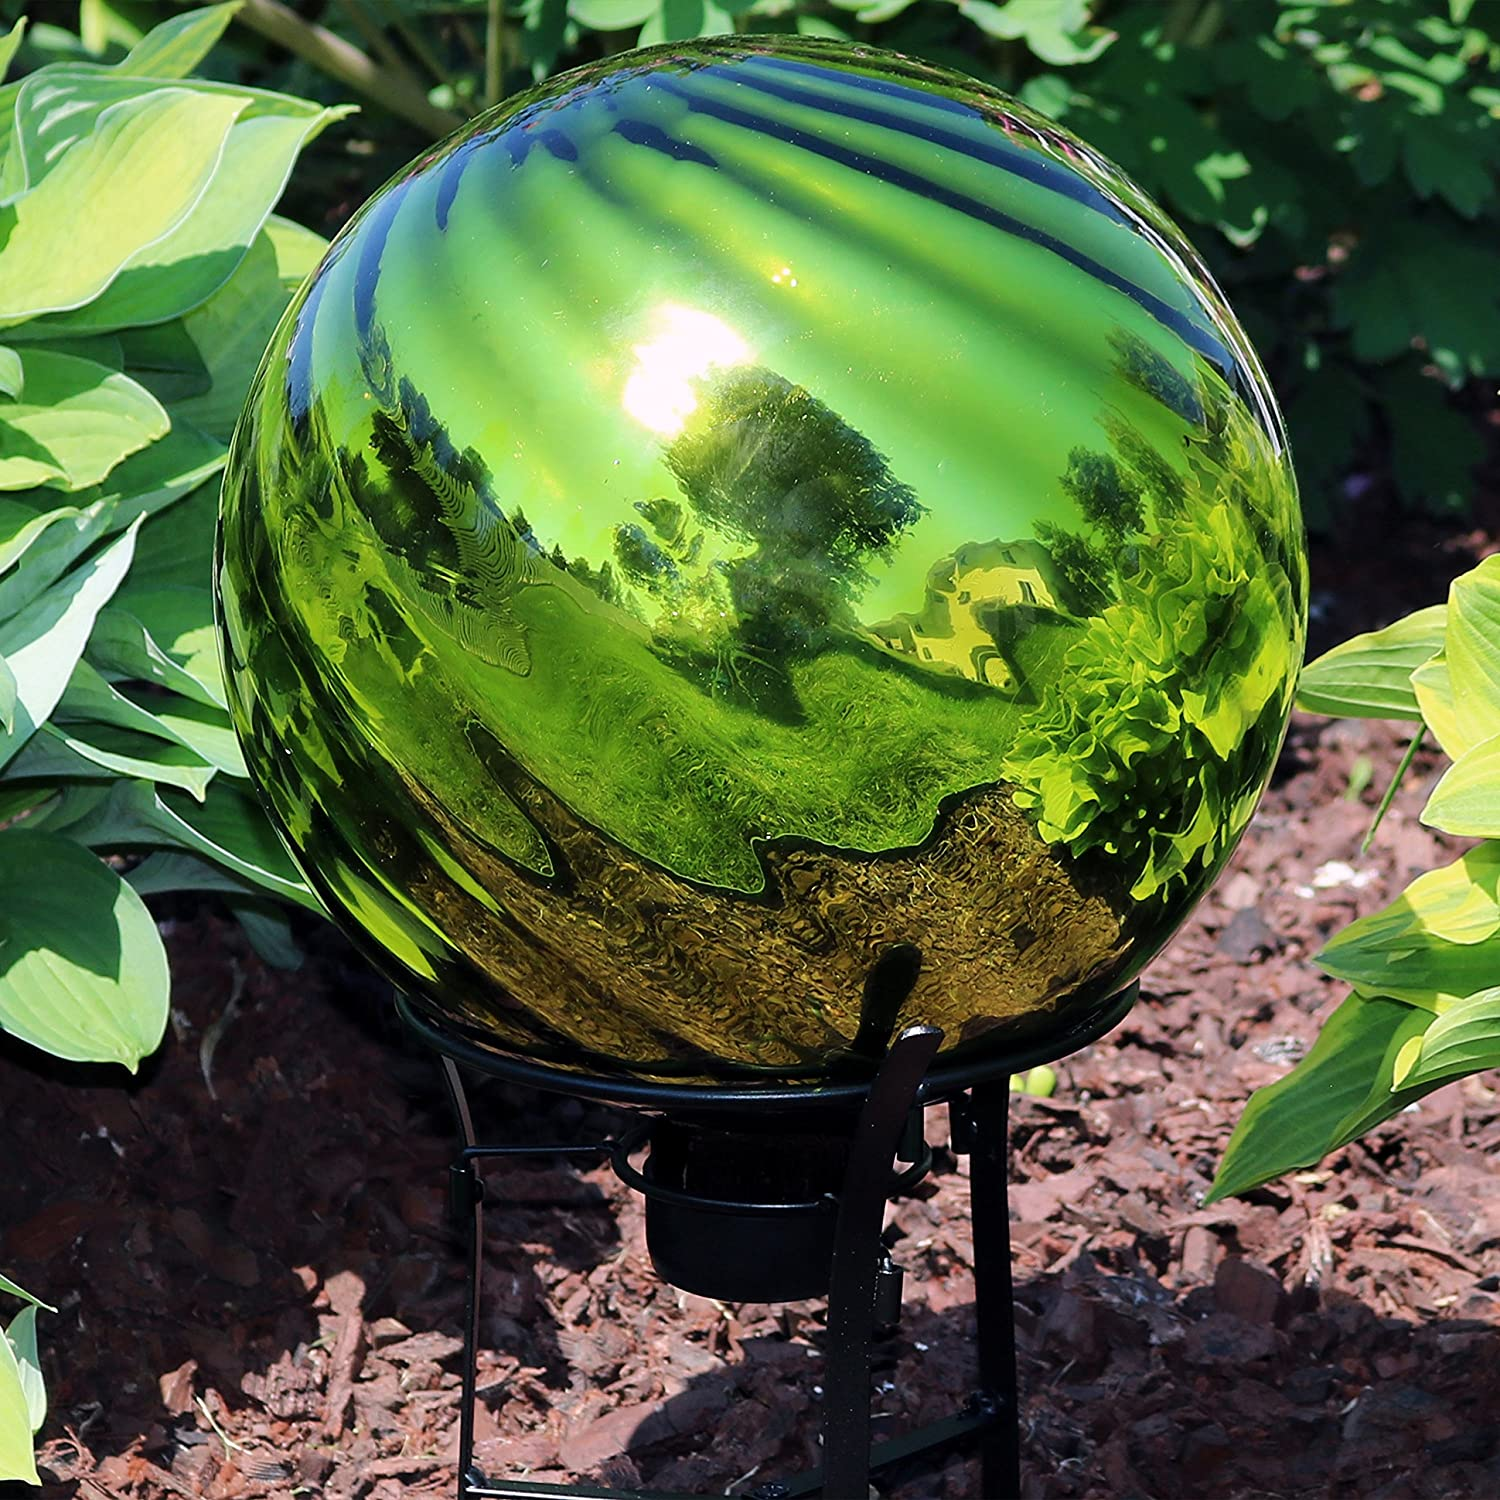 Outdoor Lawn and Yard Ornament 10-inch Sunnydaze Green Rippled Gazing Globe Glass Garden Ball Reflective Mirrored Surface Set of 2